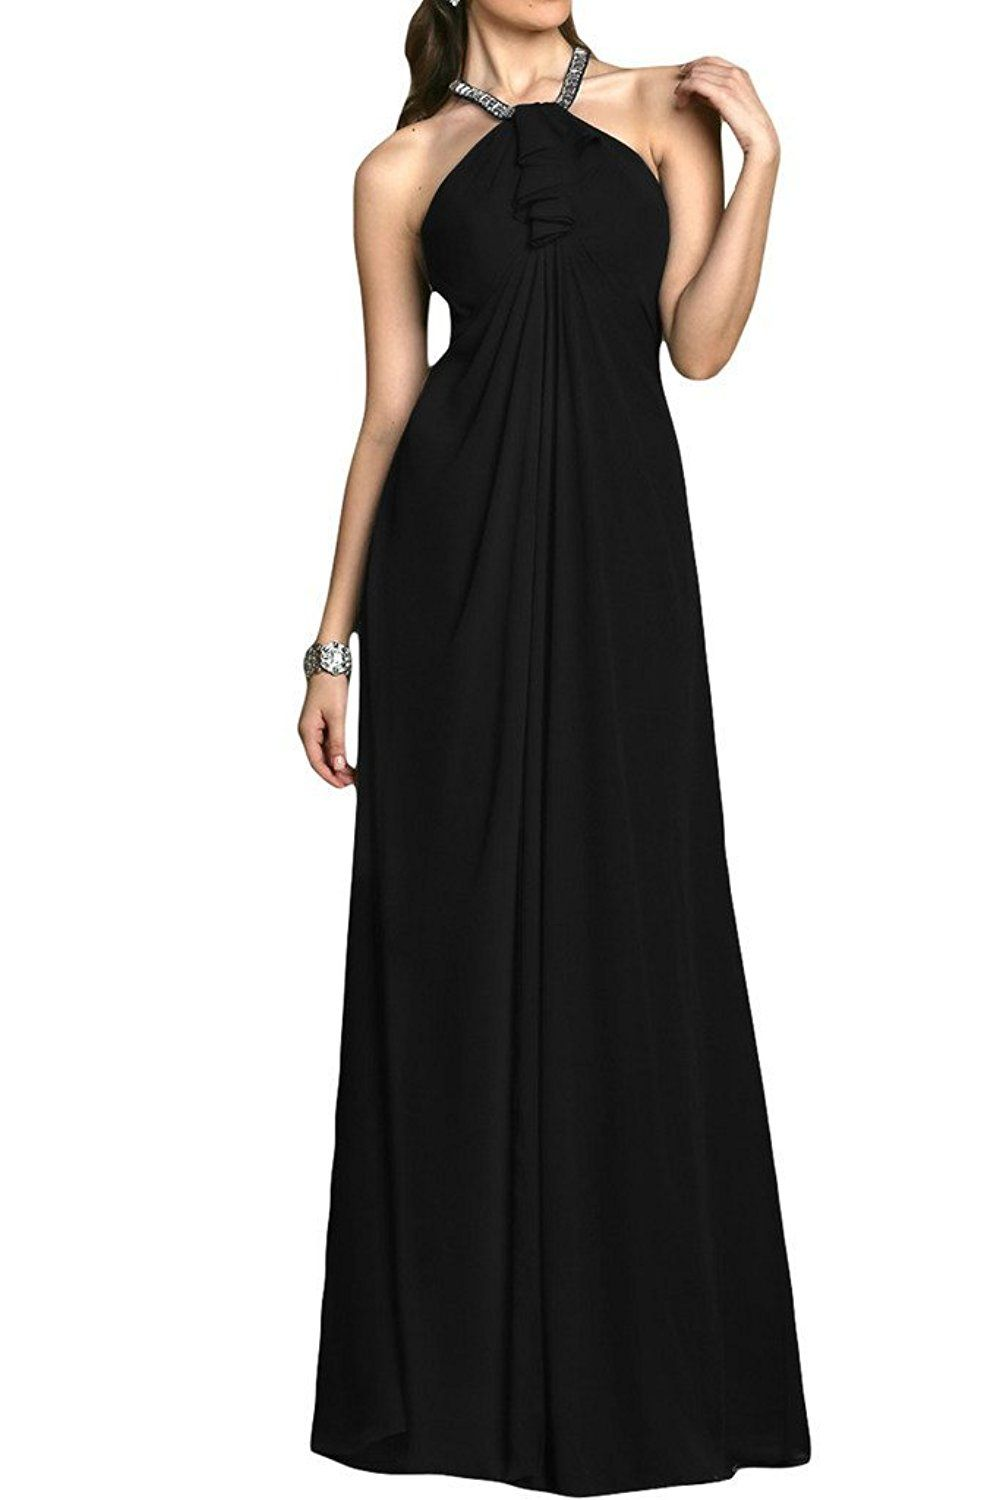 Ivydressing elegant aline halter chiffon prom club gowns evening